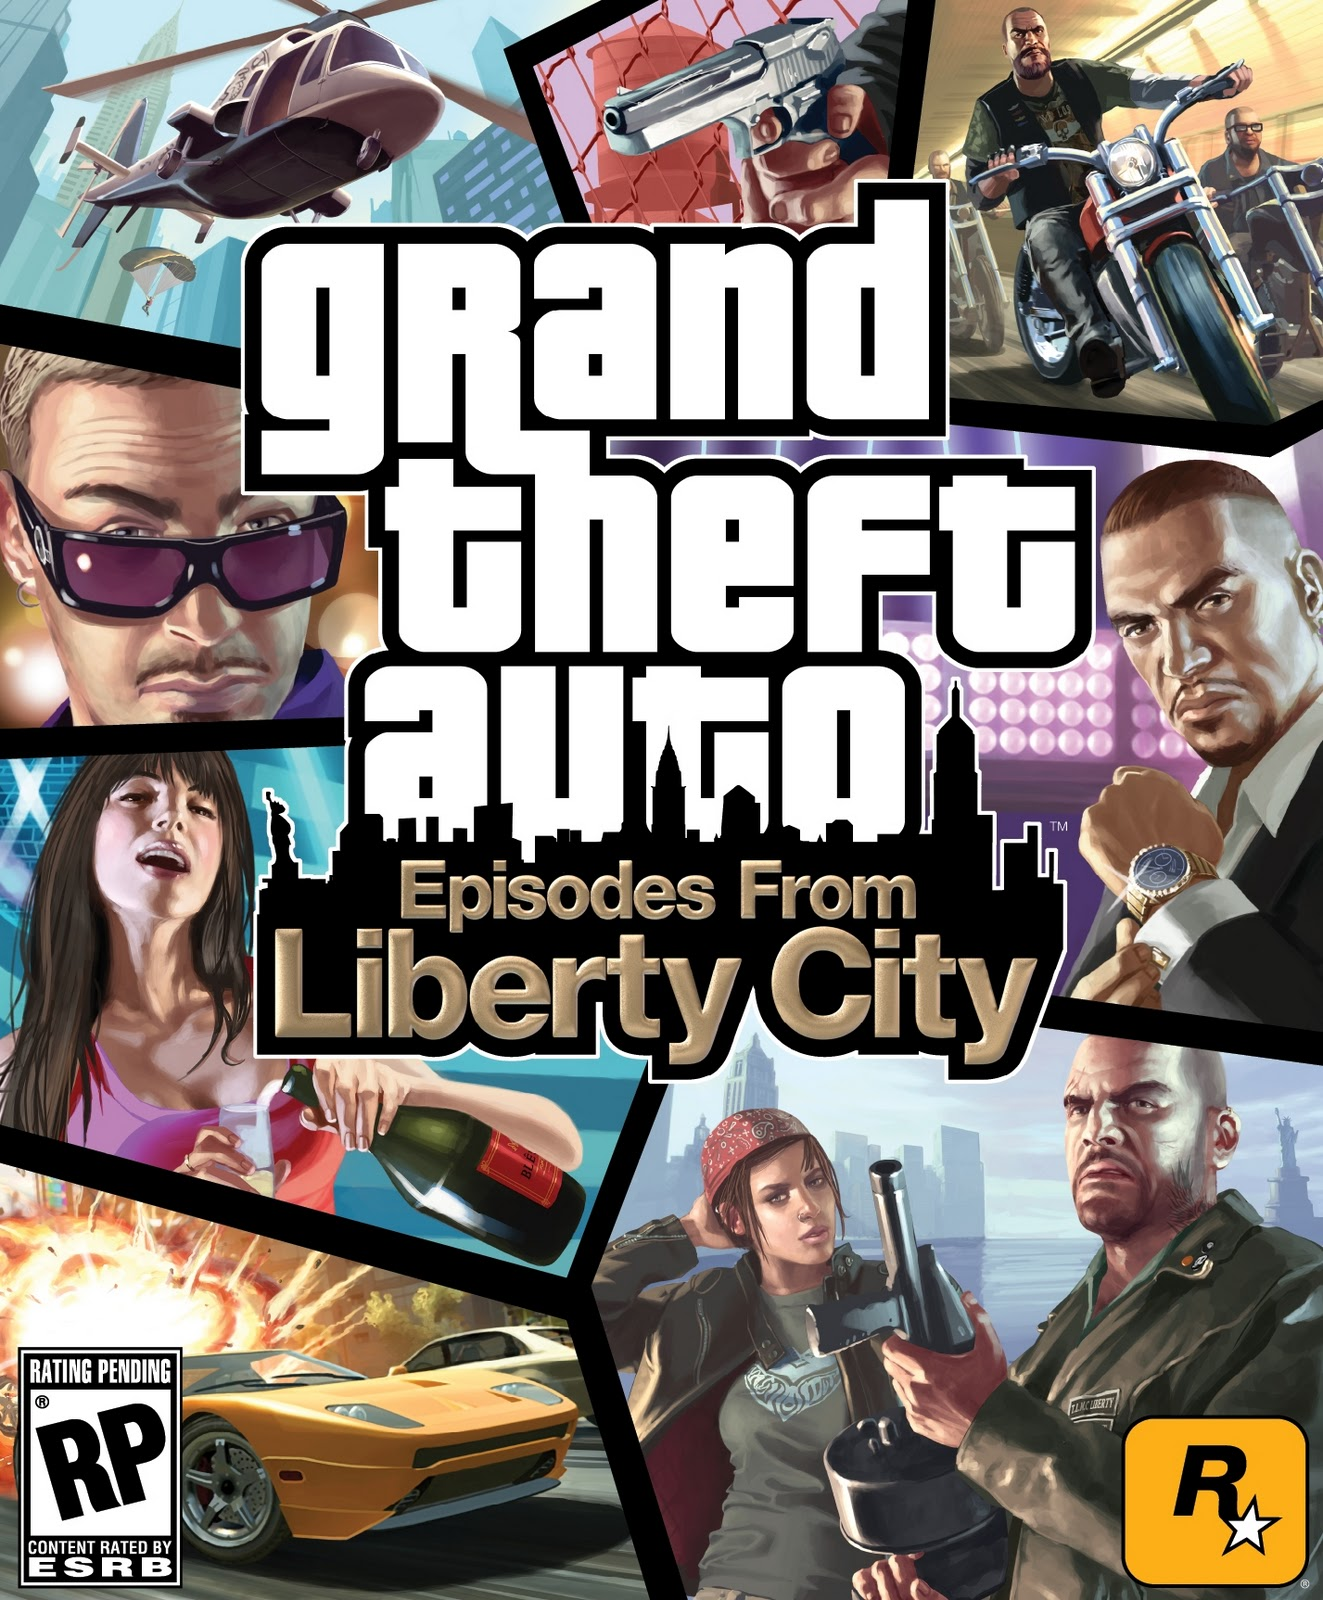 Cheats For Gta 4 Episodes From Liberty City Xbox 360